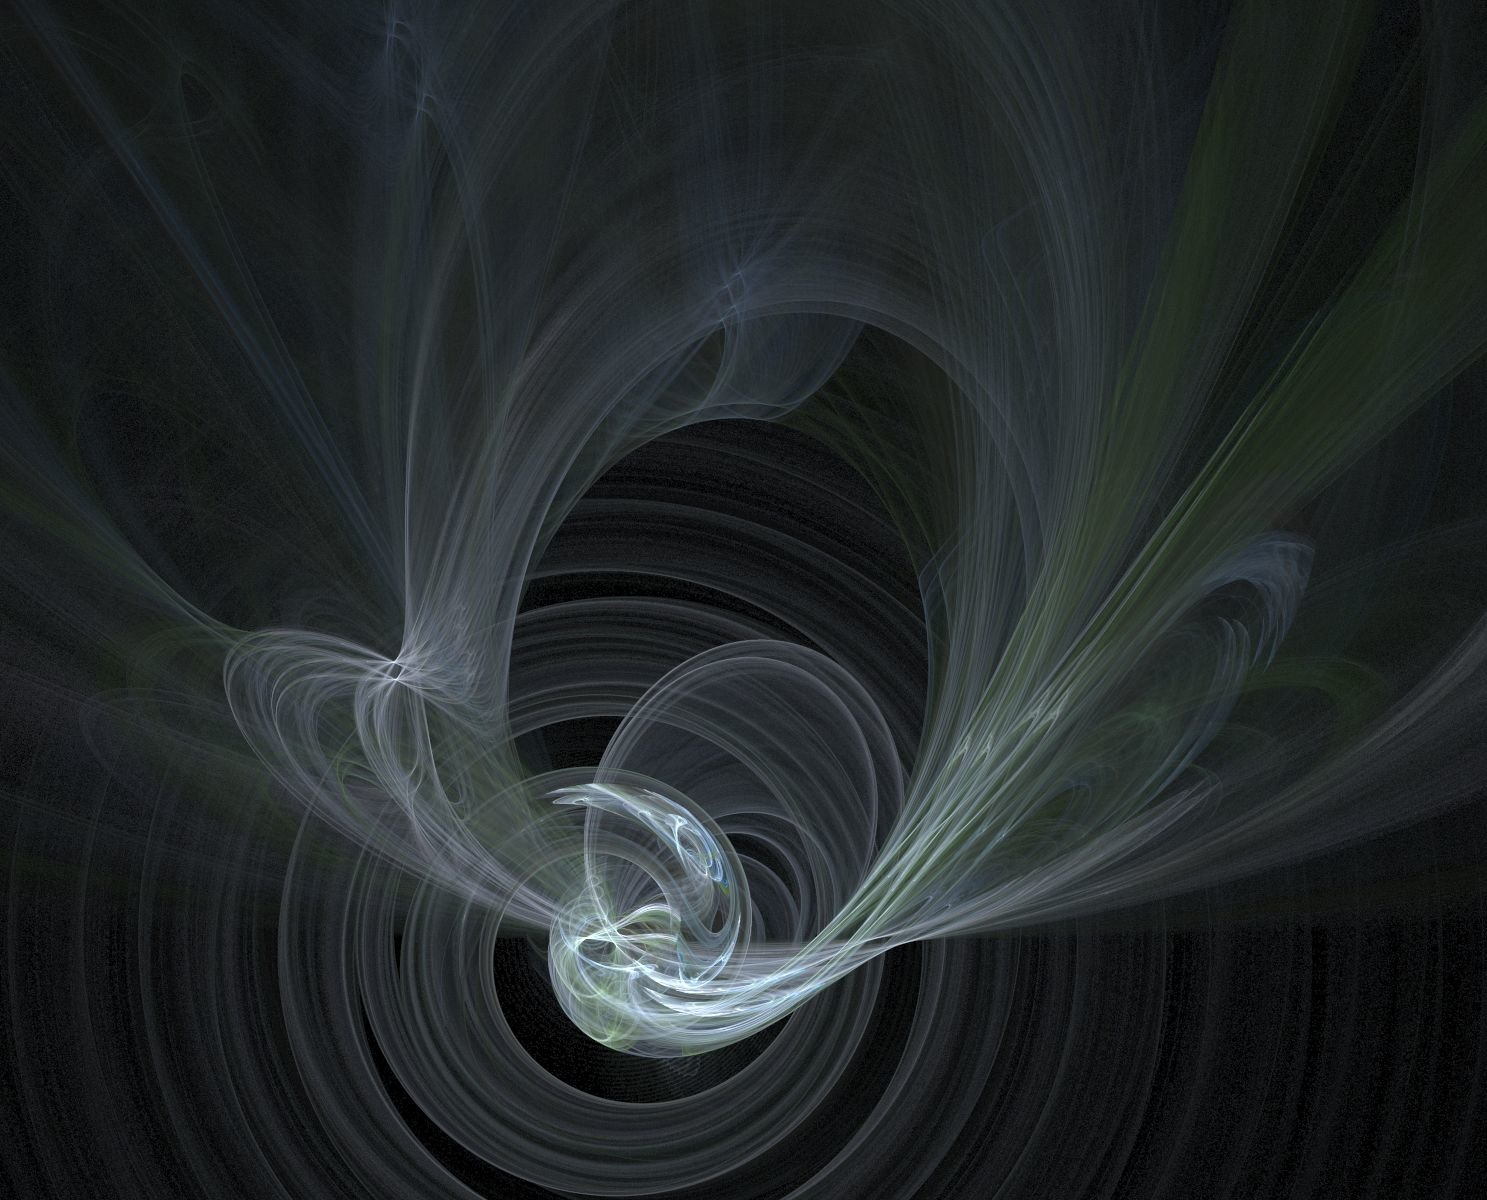 Abstract - Fractal  Abstract CGI Artistic Digital Art Wallpaper